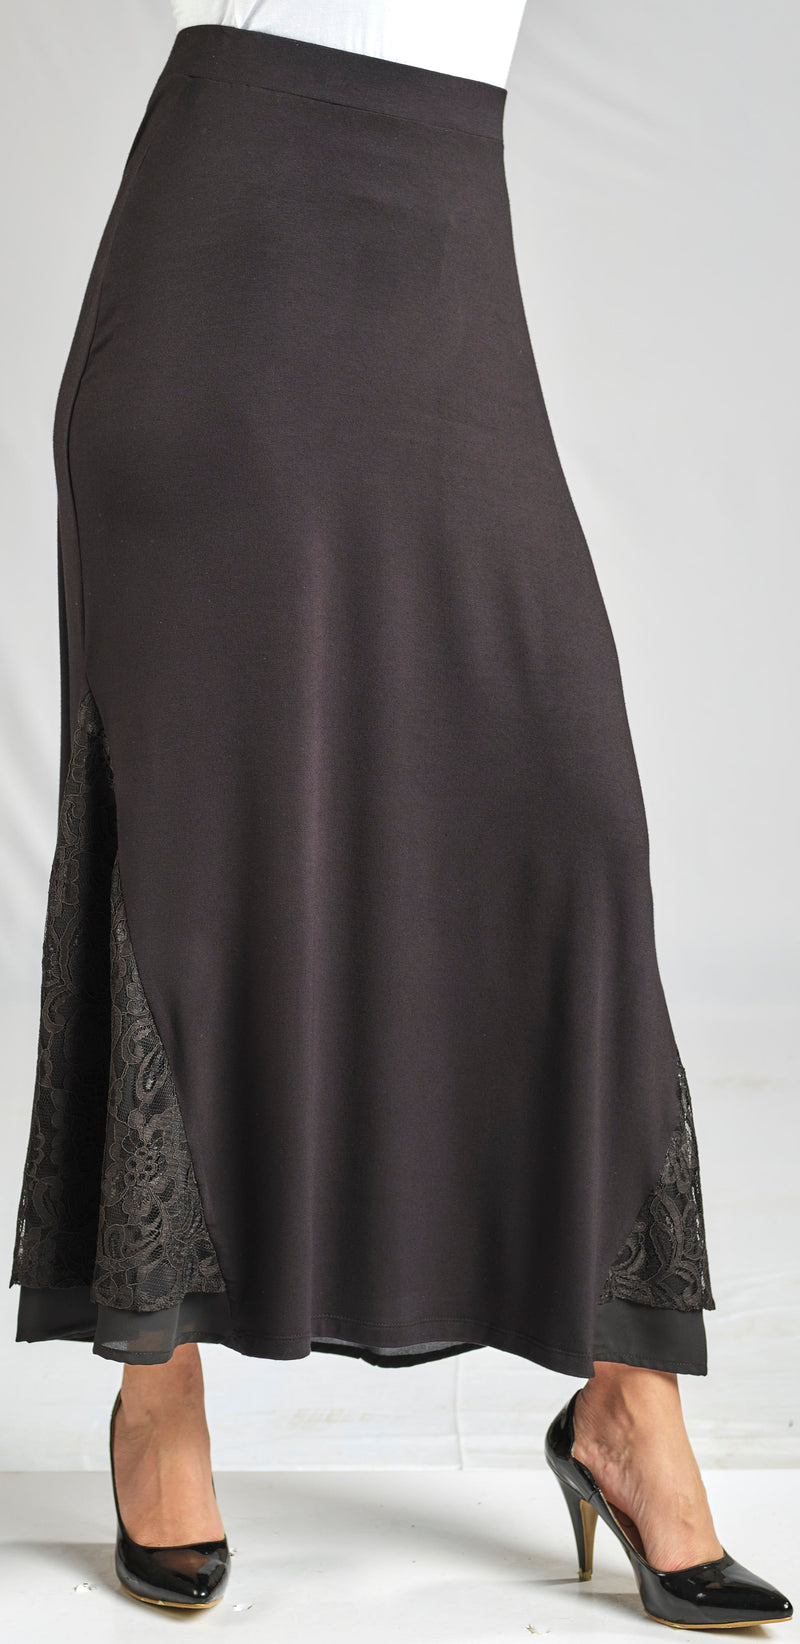 100% NATURAL MODAL SKIRT WITH A LACE DETAIL AND AN ELASTIC WAIST FOR EXTRA COMFORT